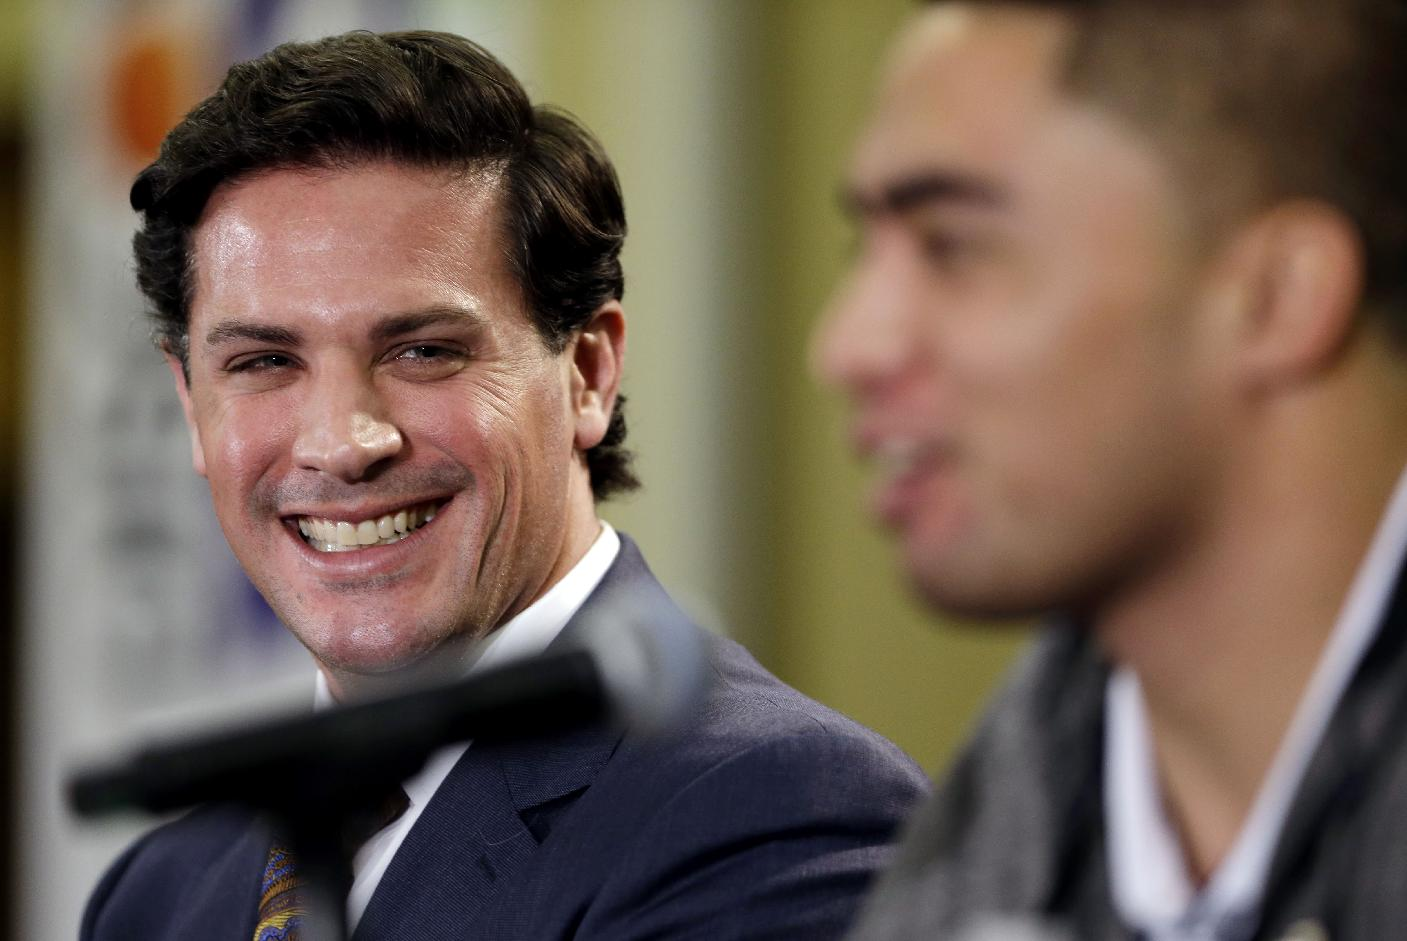 In this Jan. 3, 2013 photo, Notre Dame defensive coordinator Bob Diaco, left, smiles as he and linebacker Manti Te'o speak during a news conference in Fort Lauderdale, Fla. Connecticut has hired Notre Dame defensive coordinator Bob Diaco as its football coach. The school announced the move early Thursday morning, Dec. 12, 2013